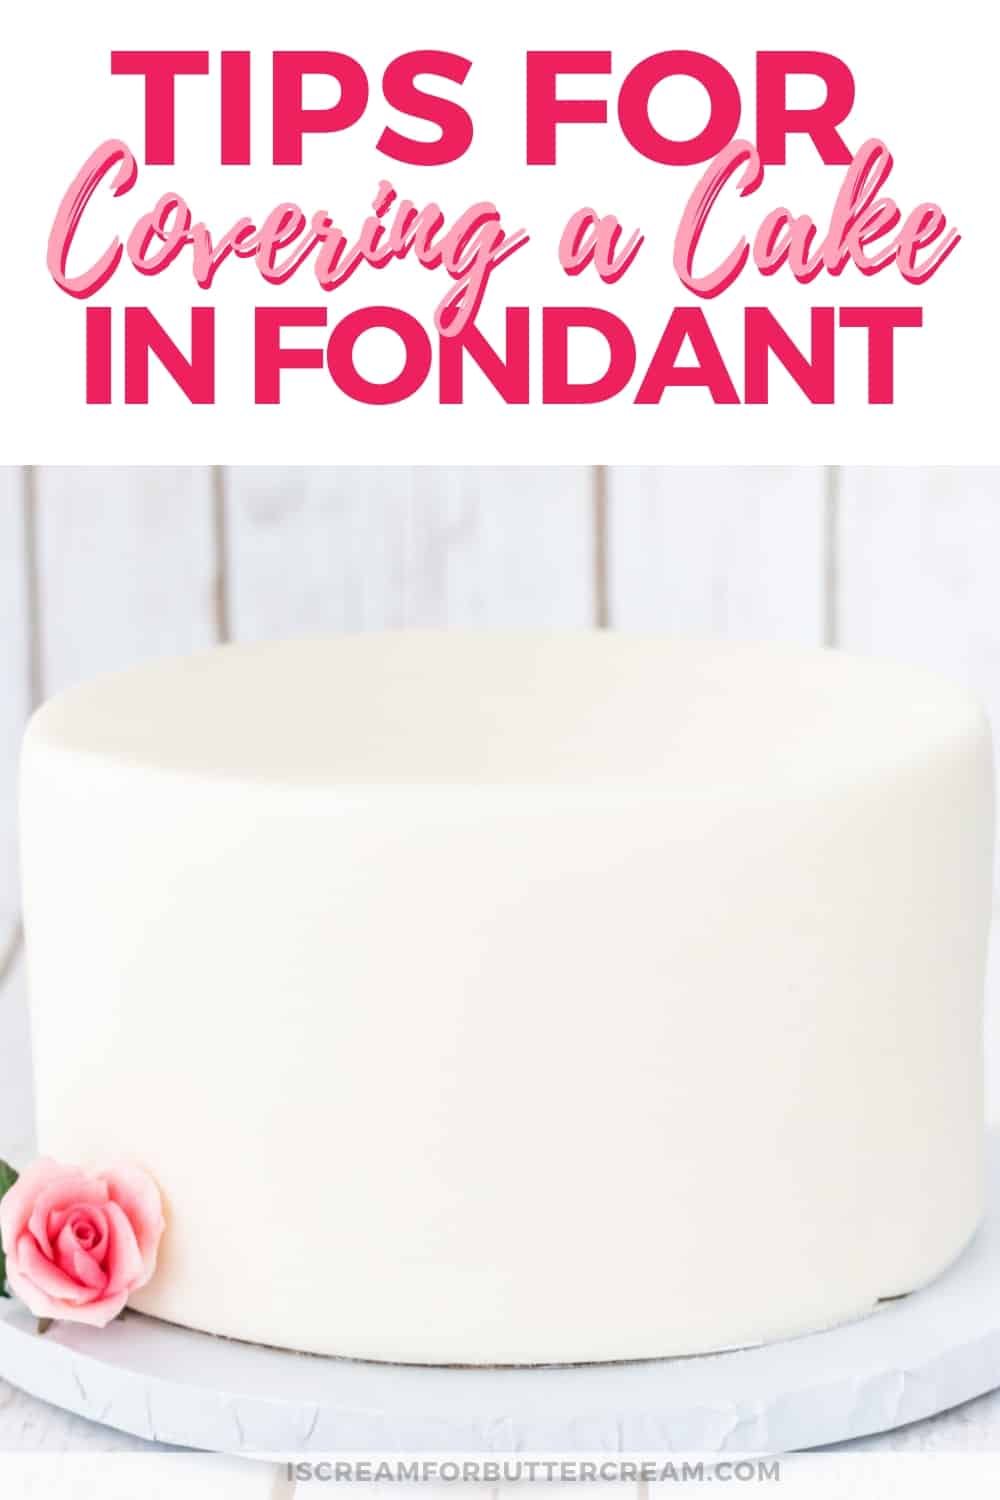 Tips for Covering a Cake in Fondant New Pin Graphic 2